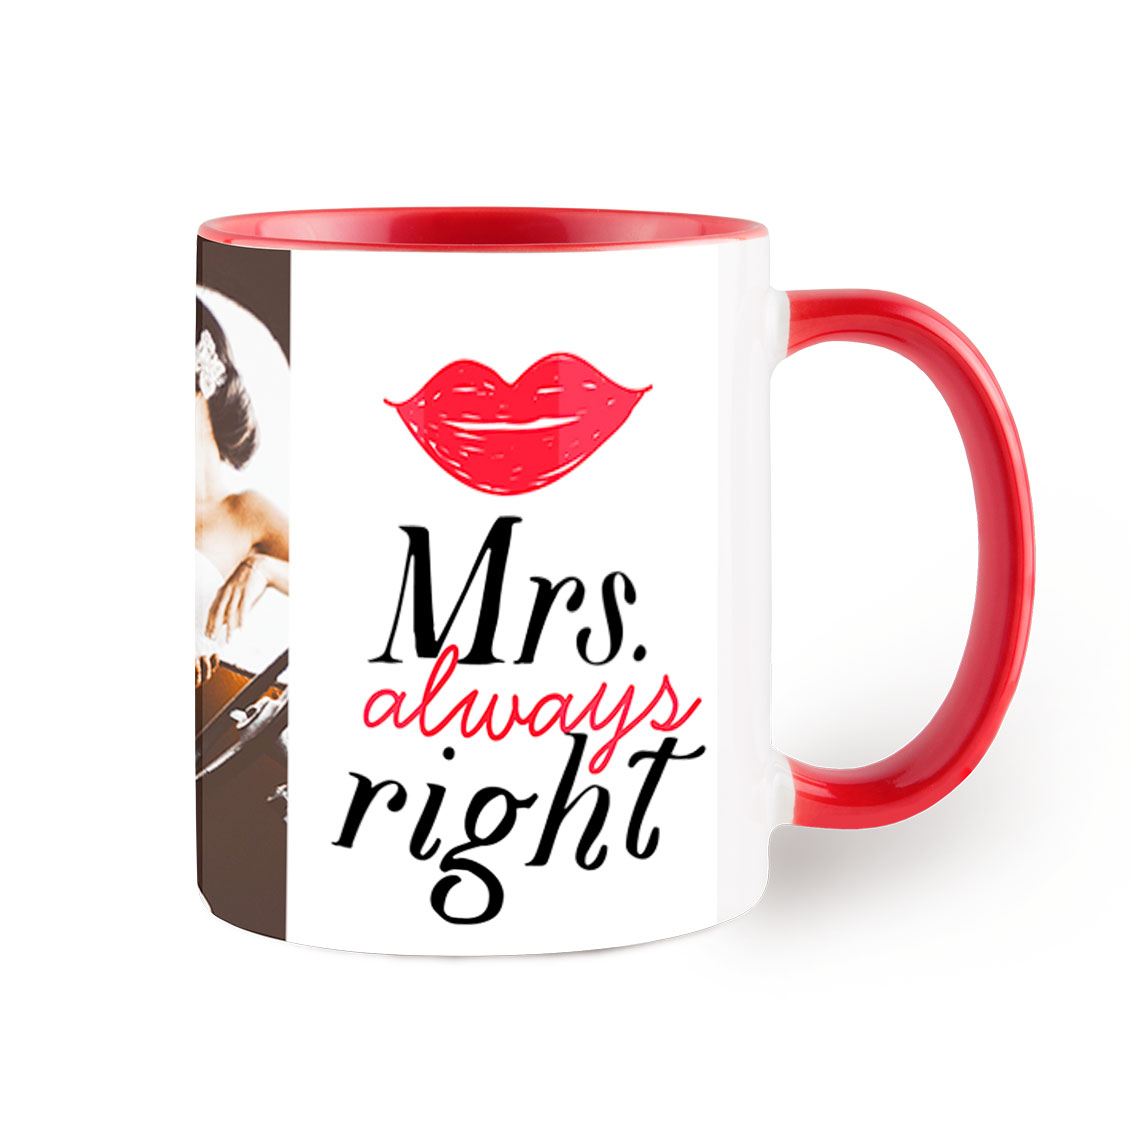 red coffee mug 11 oz red colorful mug mugs gifts snapfish us. Black Bedroom Furniture Sets. Home Design Ideas